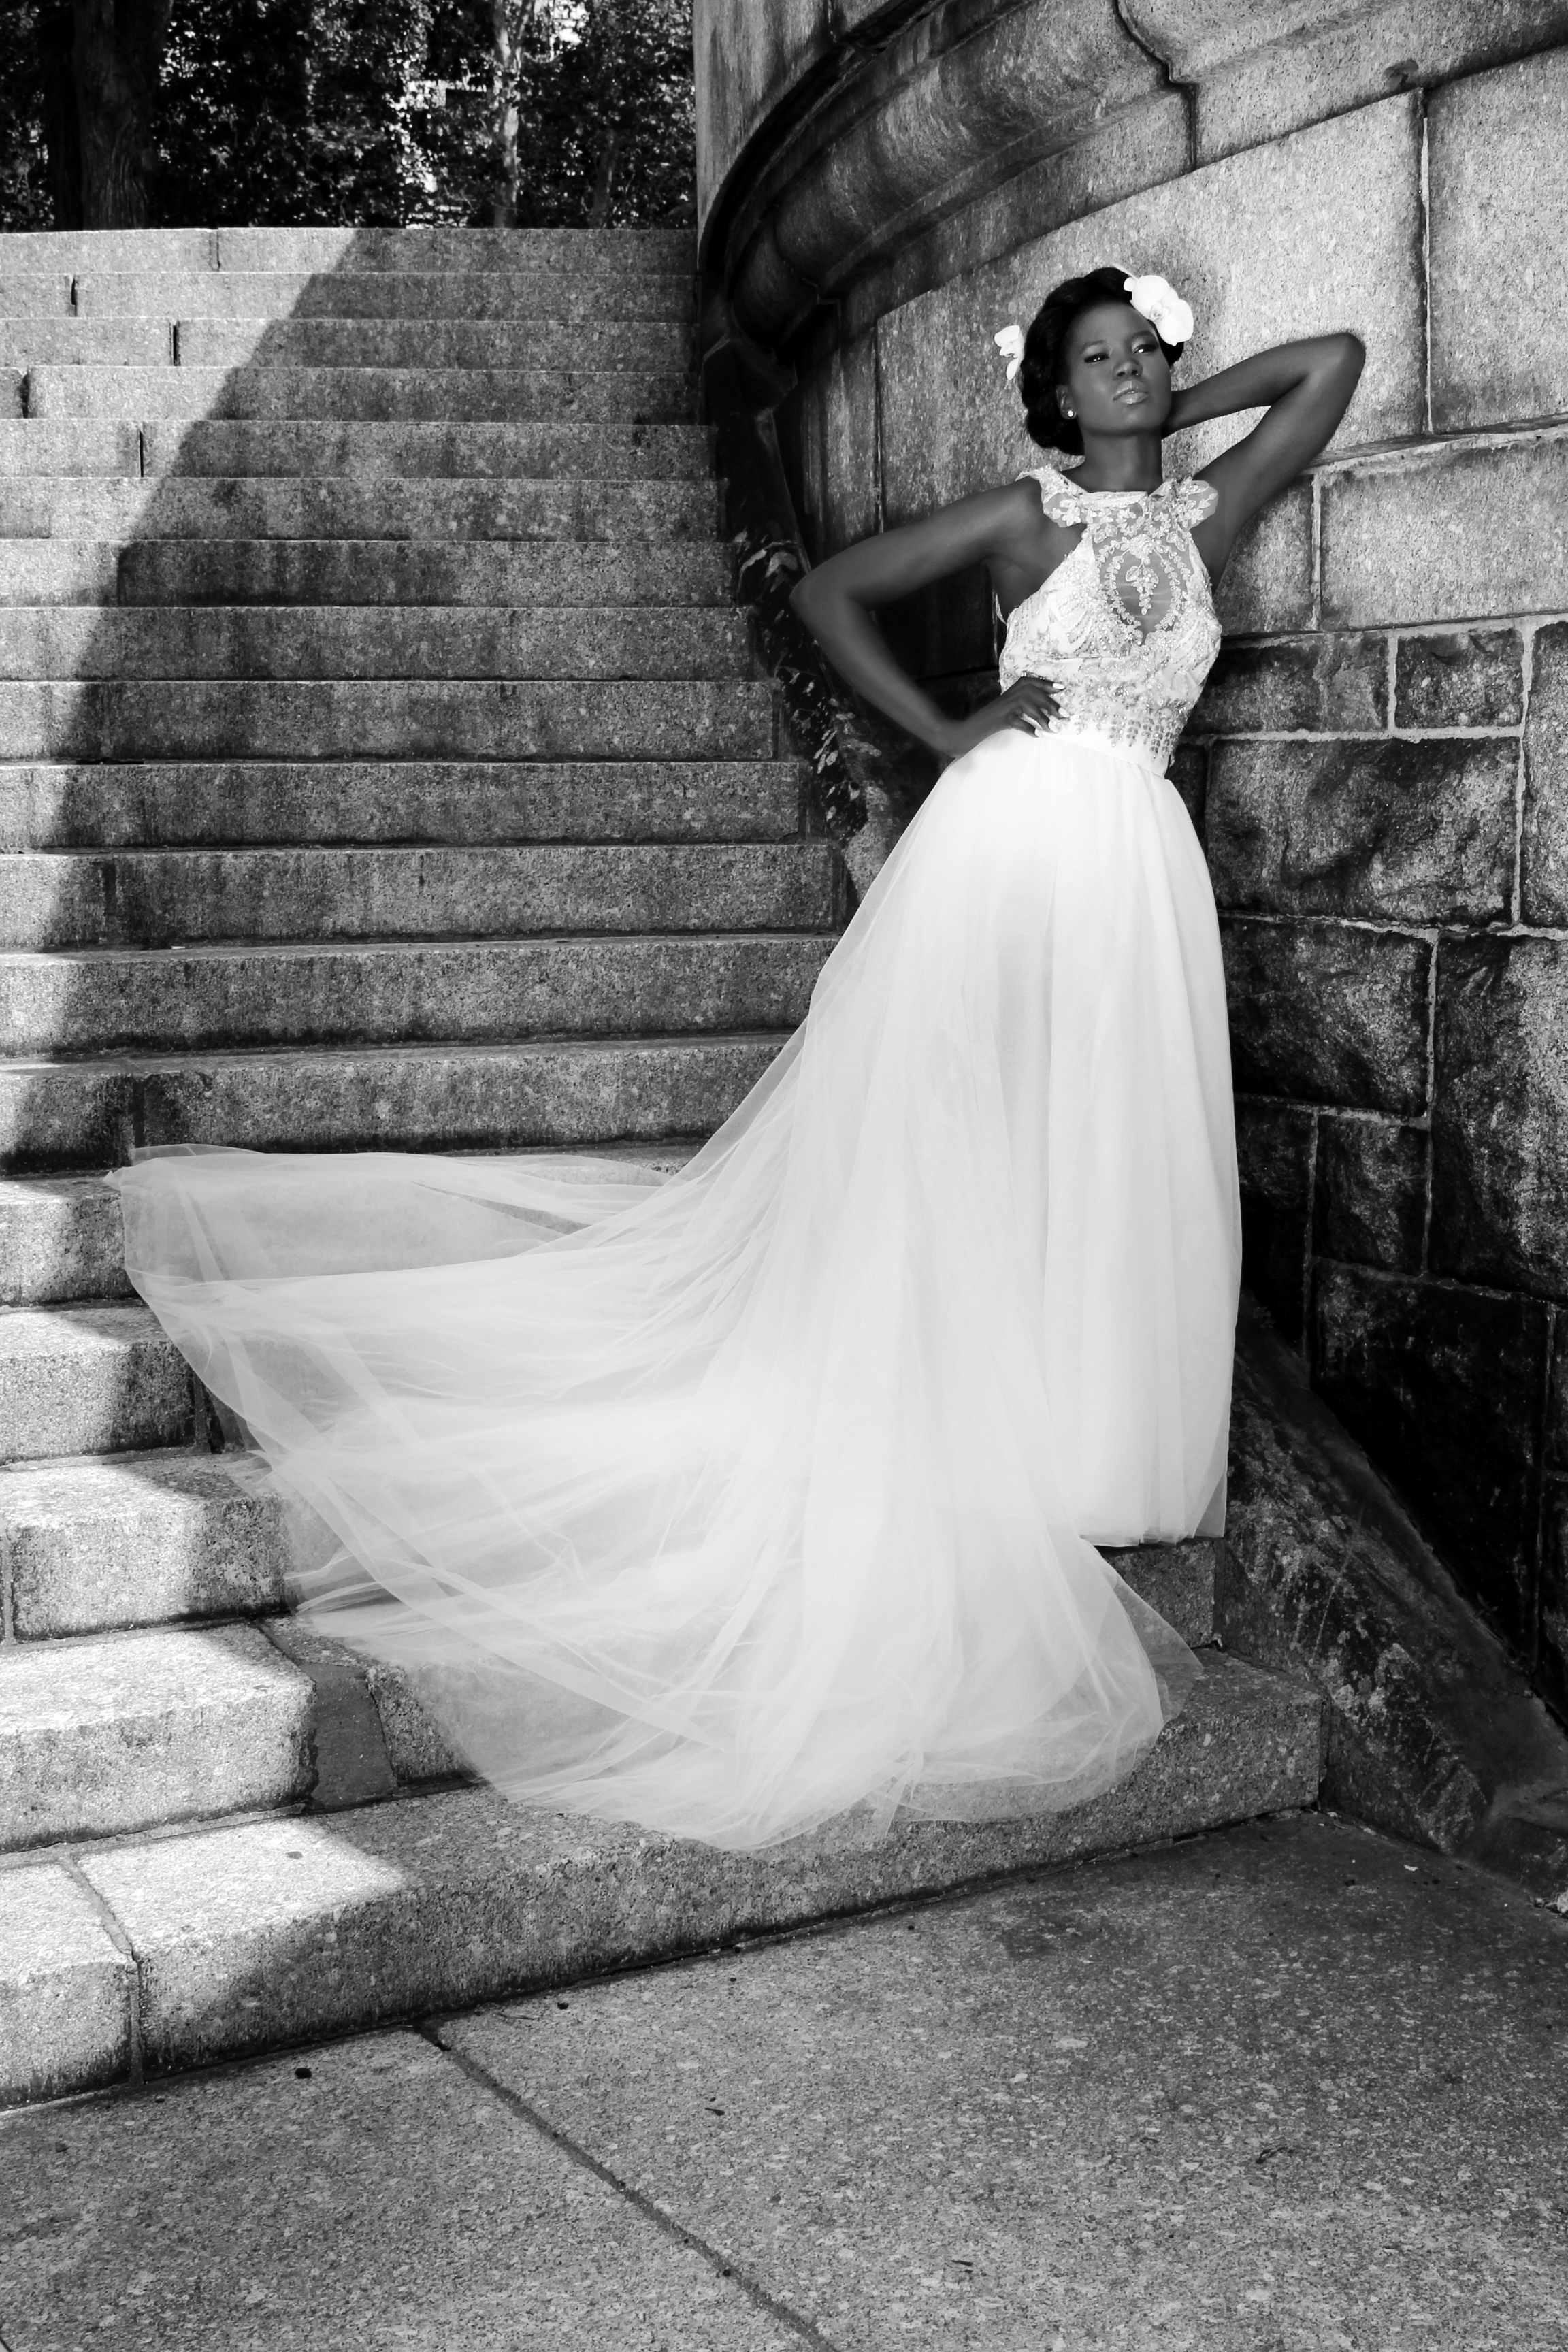 18_halter front gown w. cathedral train_bw.jpg